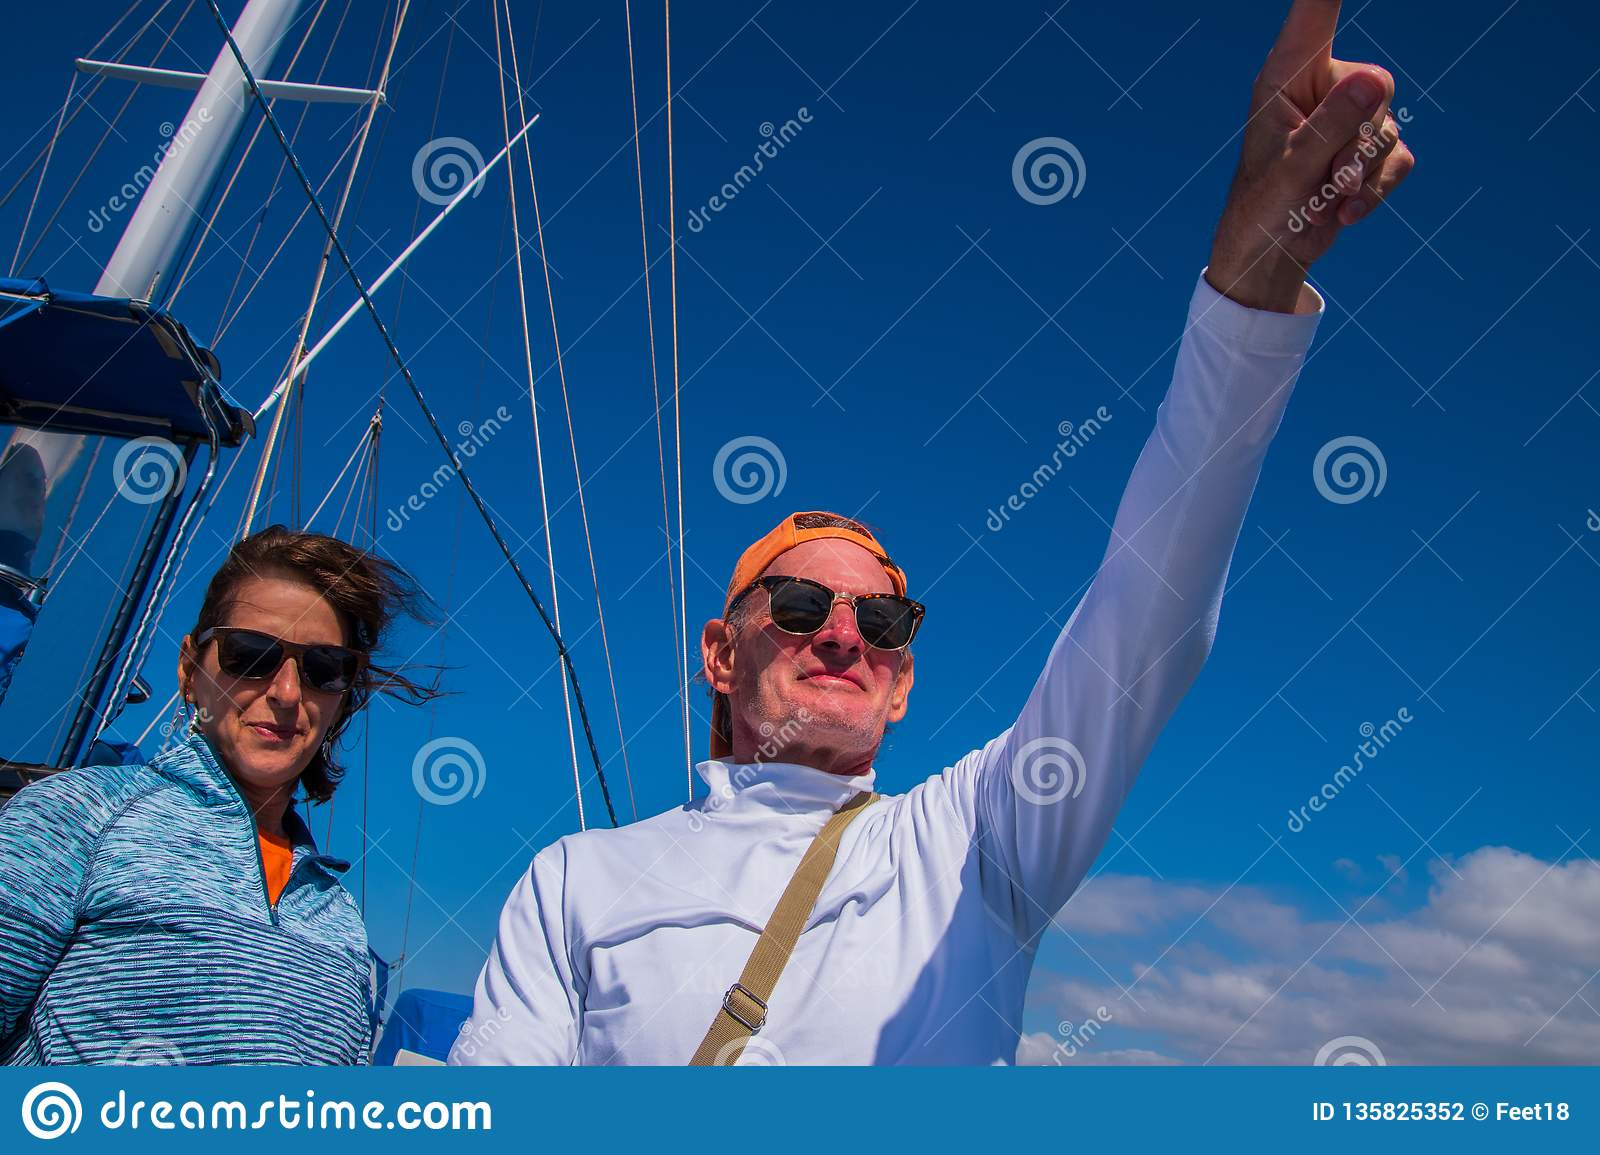 Older baby boomer caucasian couple with man pointing into the distance. Deep blue sky with sailboat rigging in background